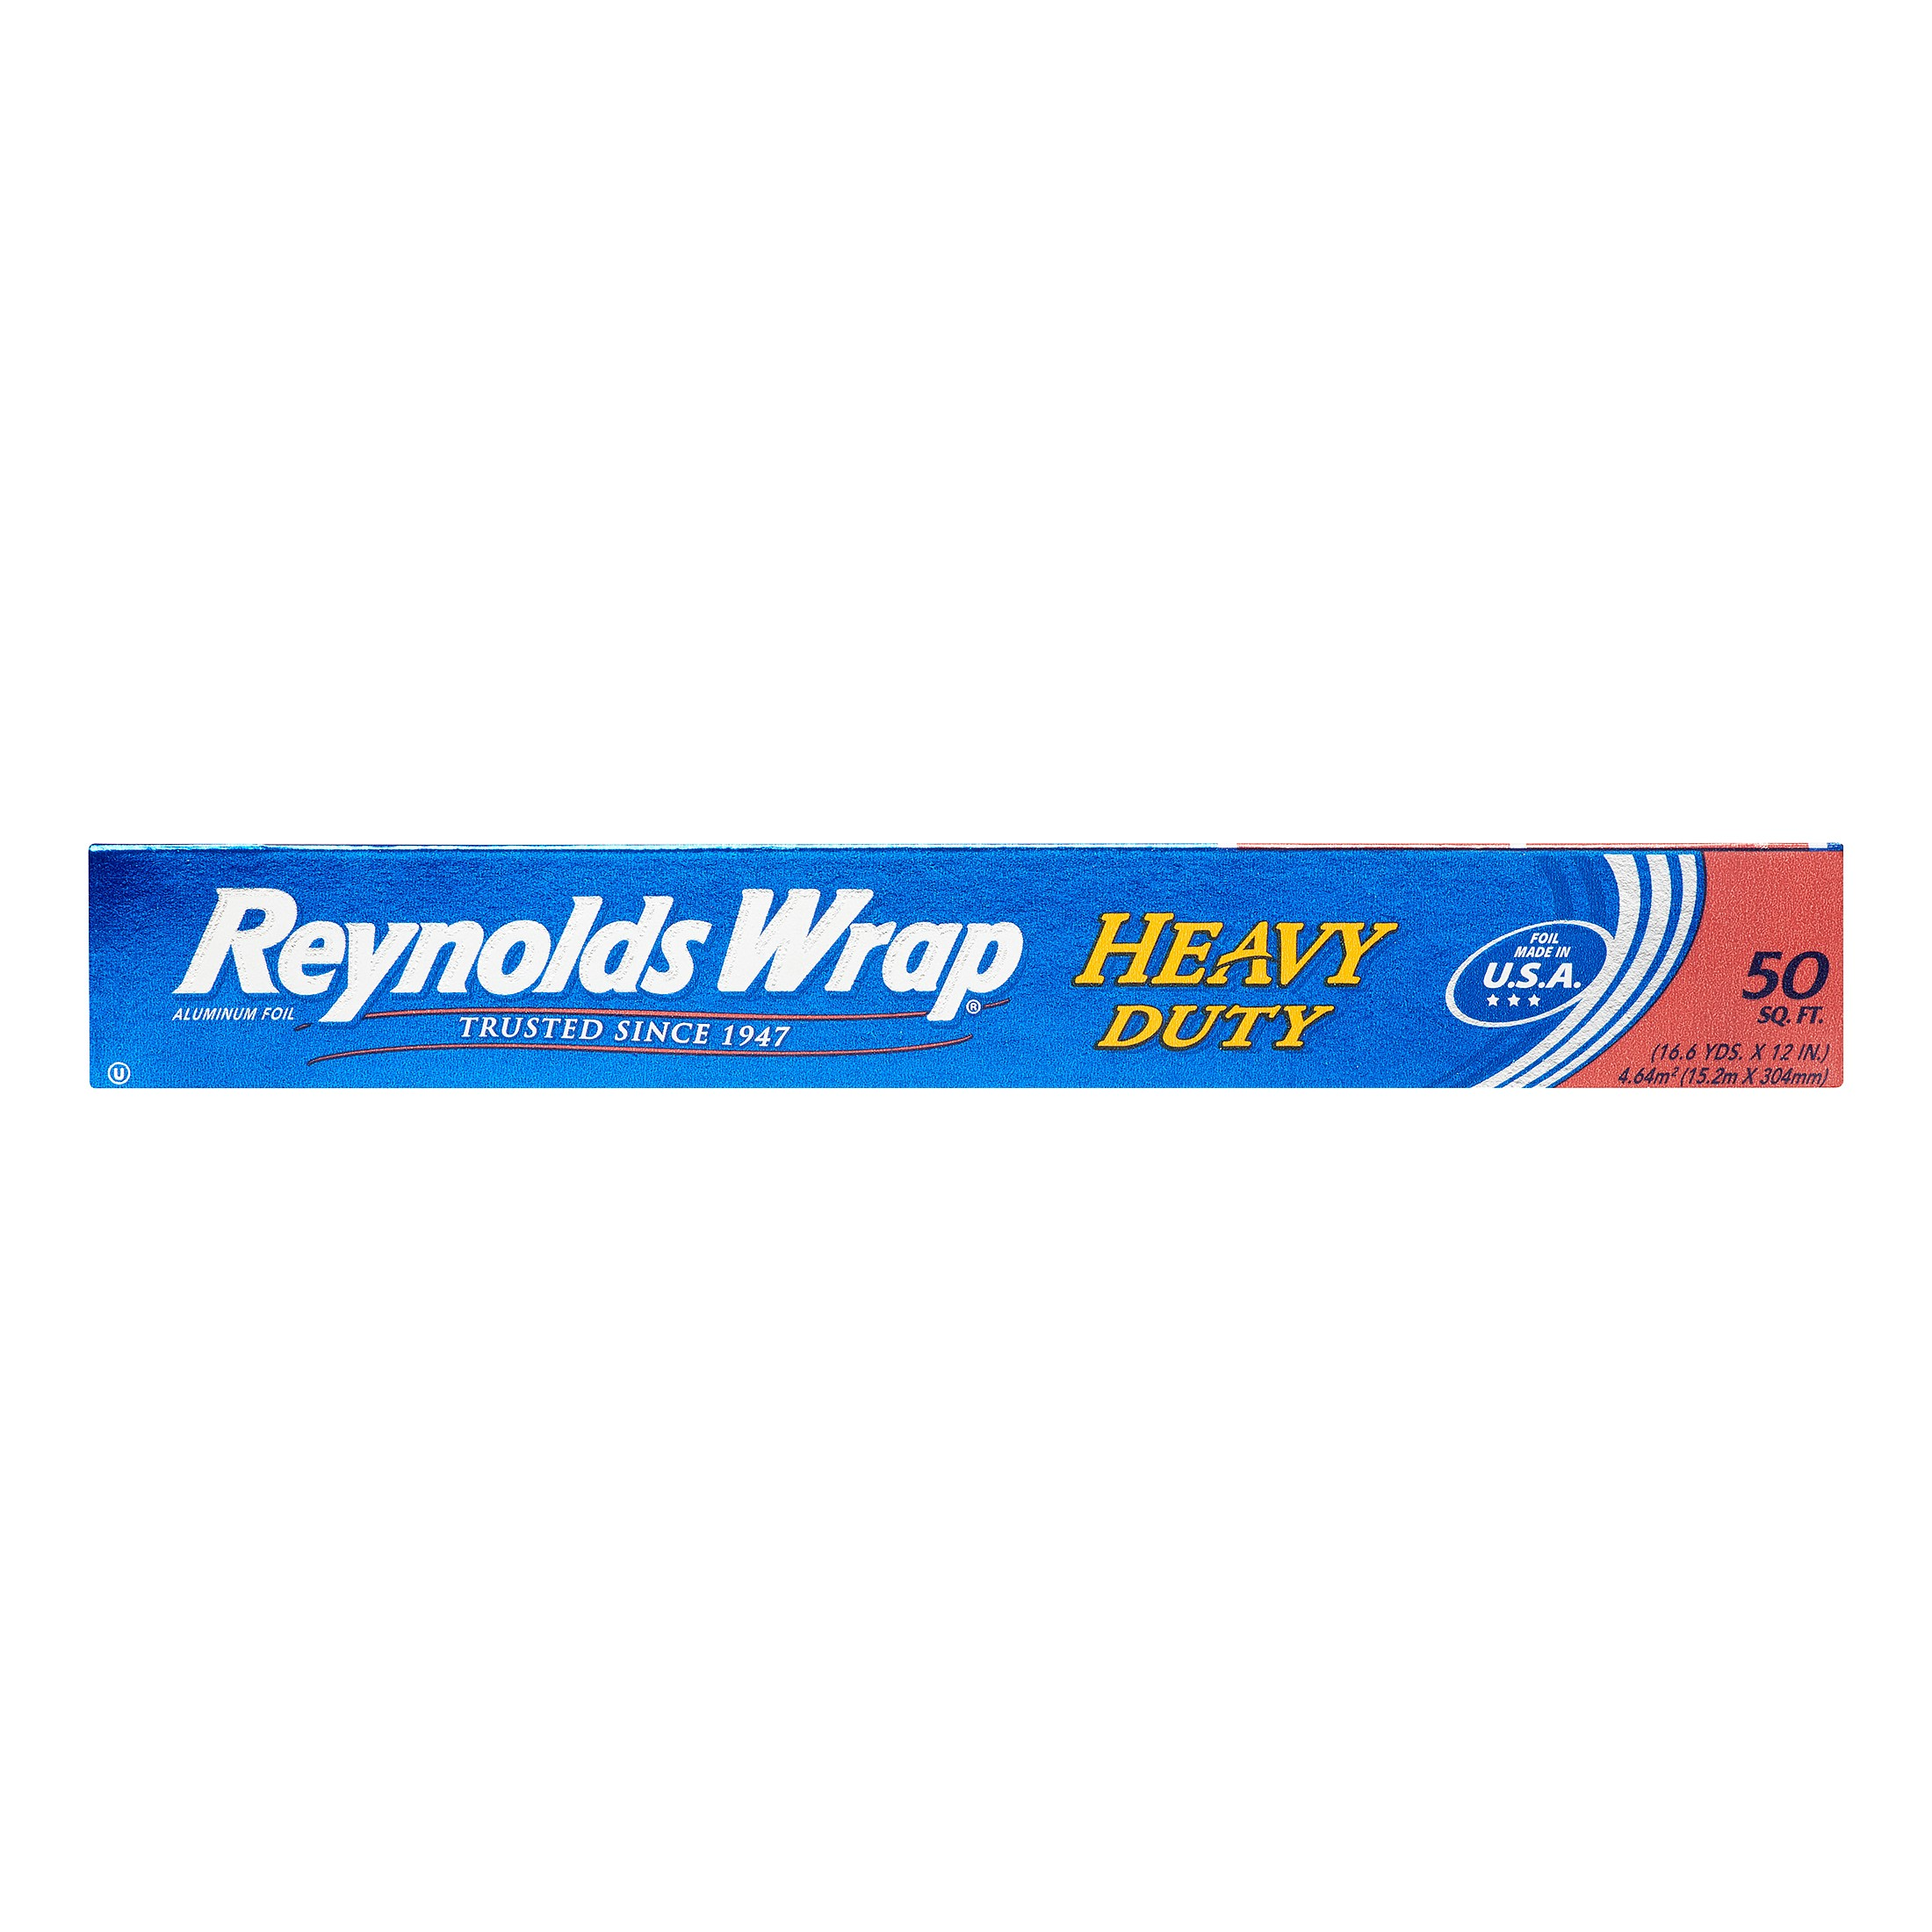 Reynolds Aluminum Foil, Heavy Duty, 50 Square-Foot Roll